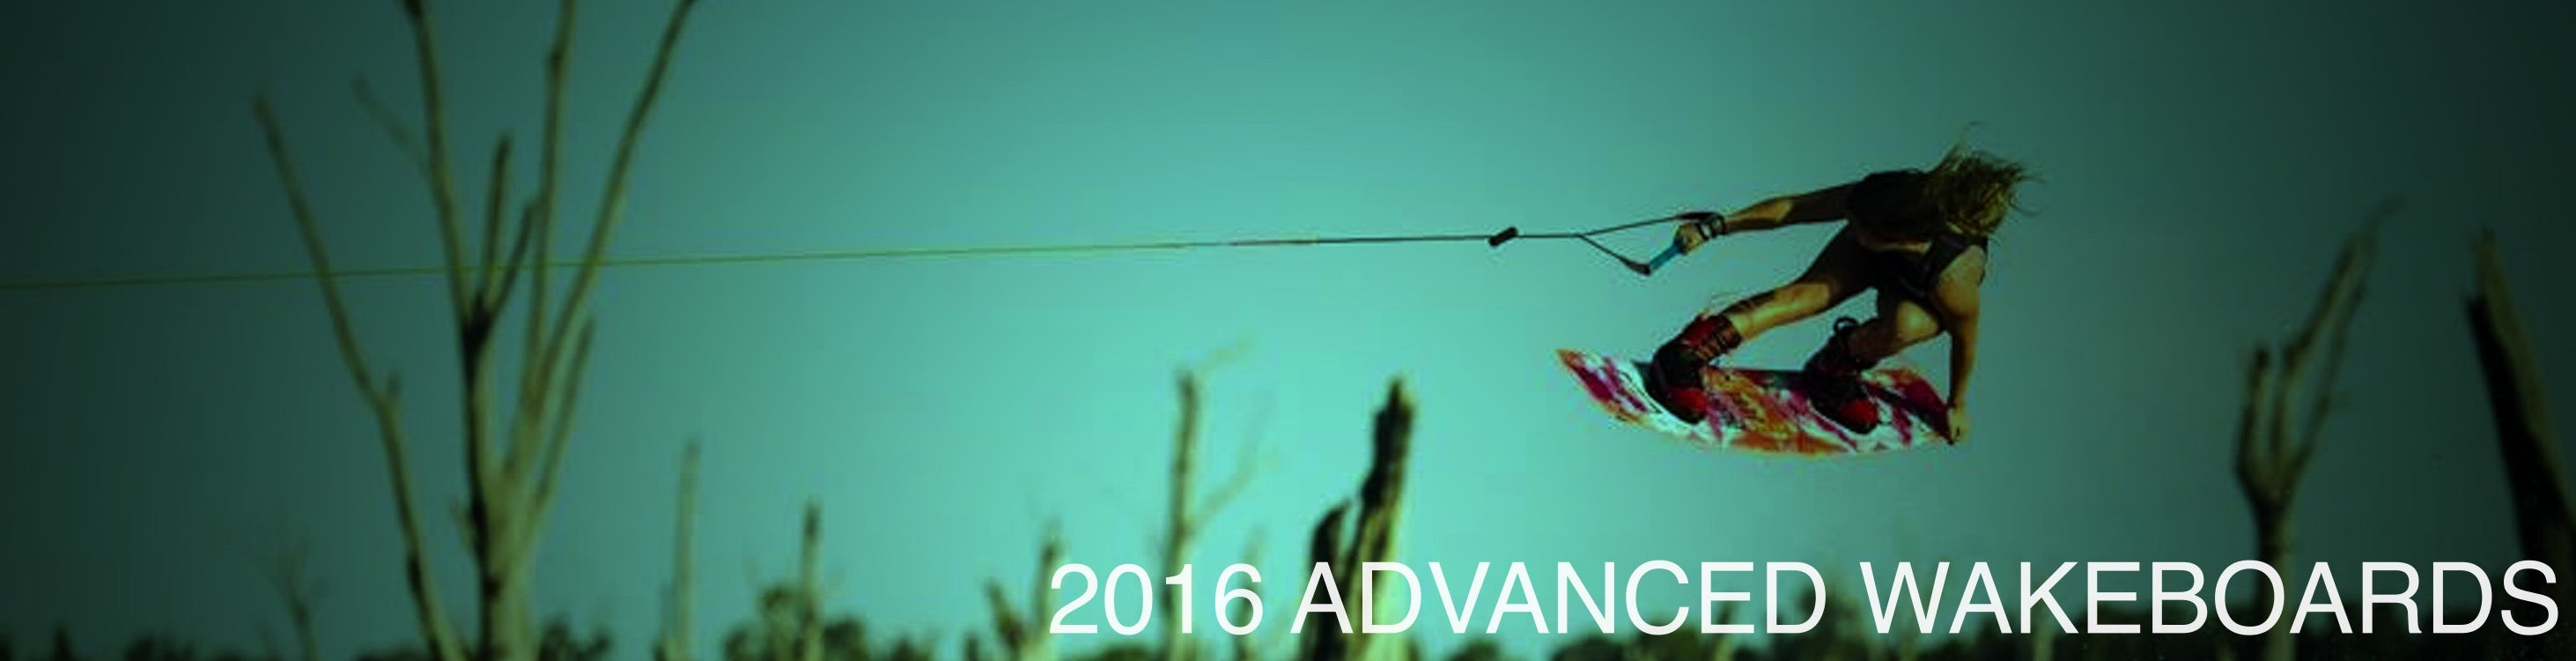 2016 top women's wakeboards for intermediate/advanced riders